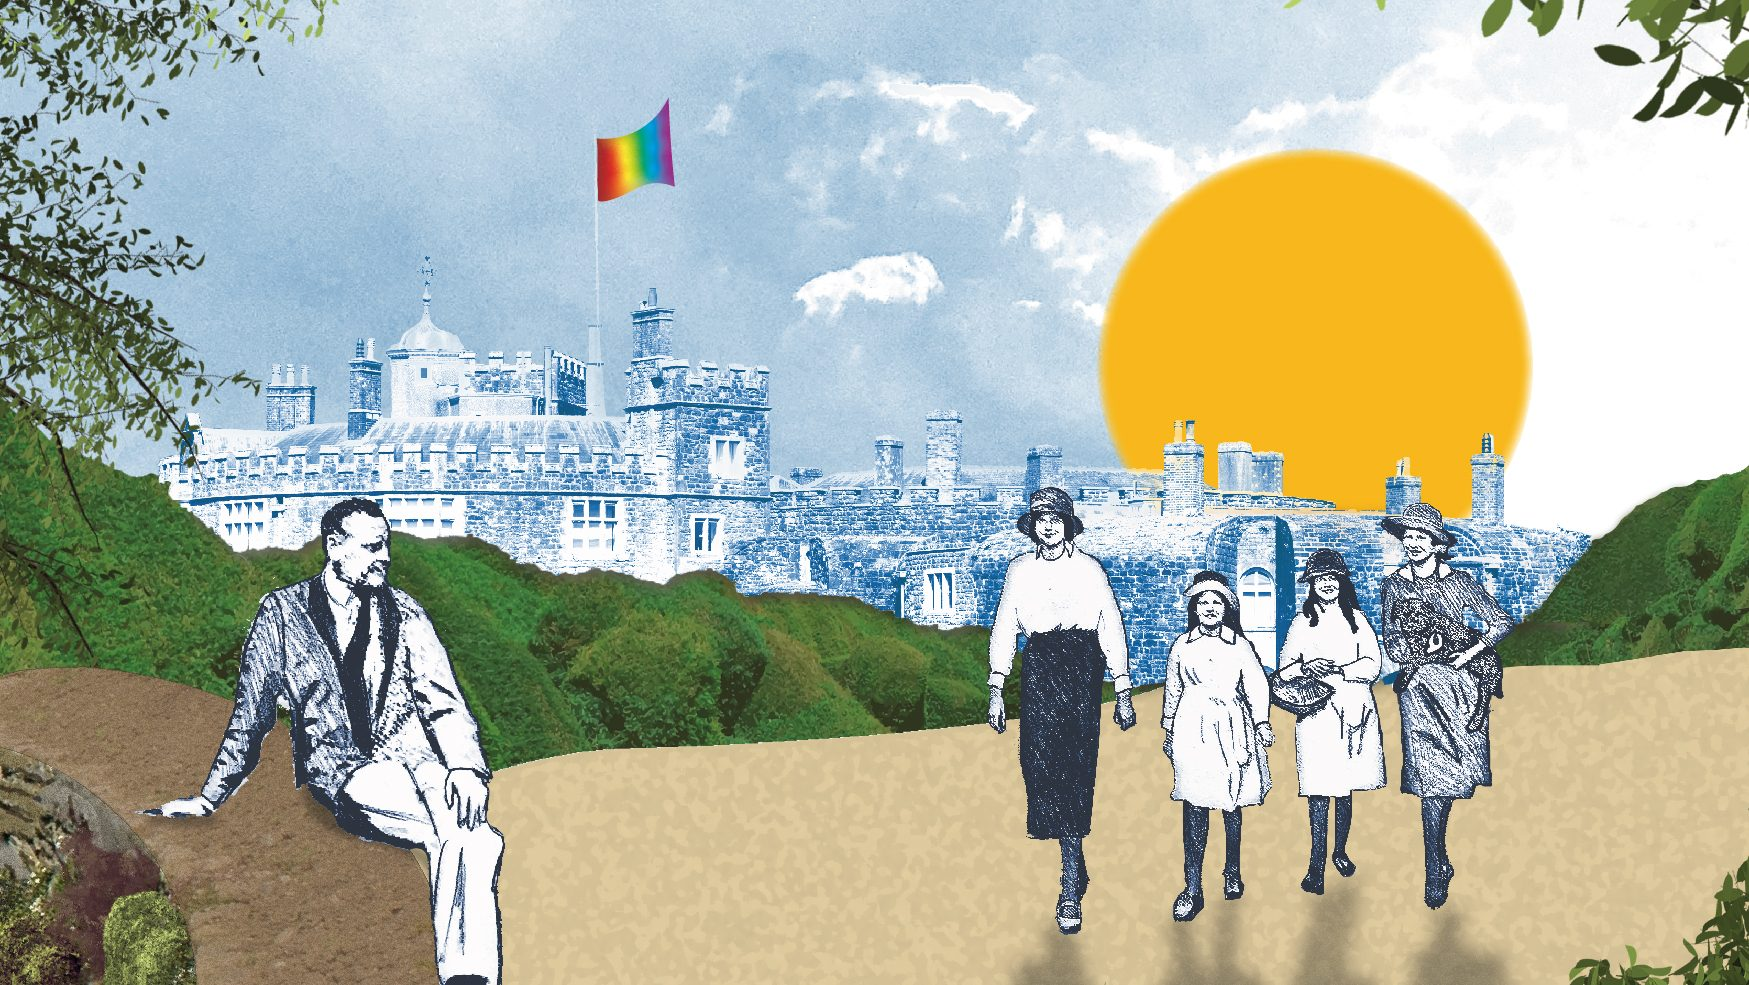 illustration of lord beauchamp and his family with walmer castle in the background bearing the Pride rainbow flag